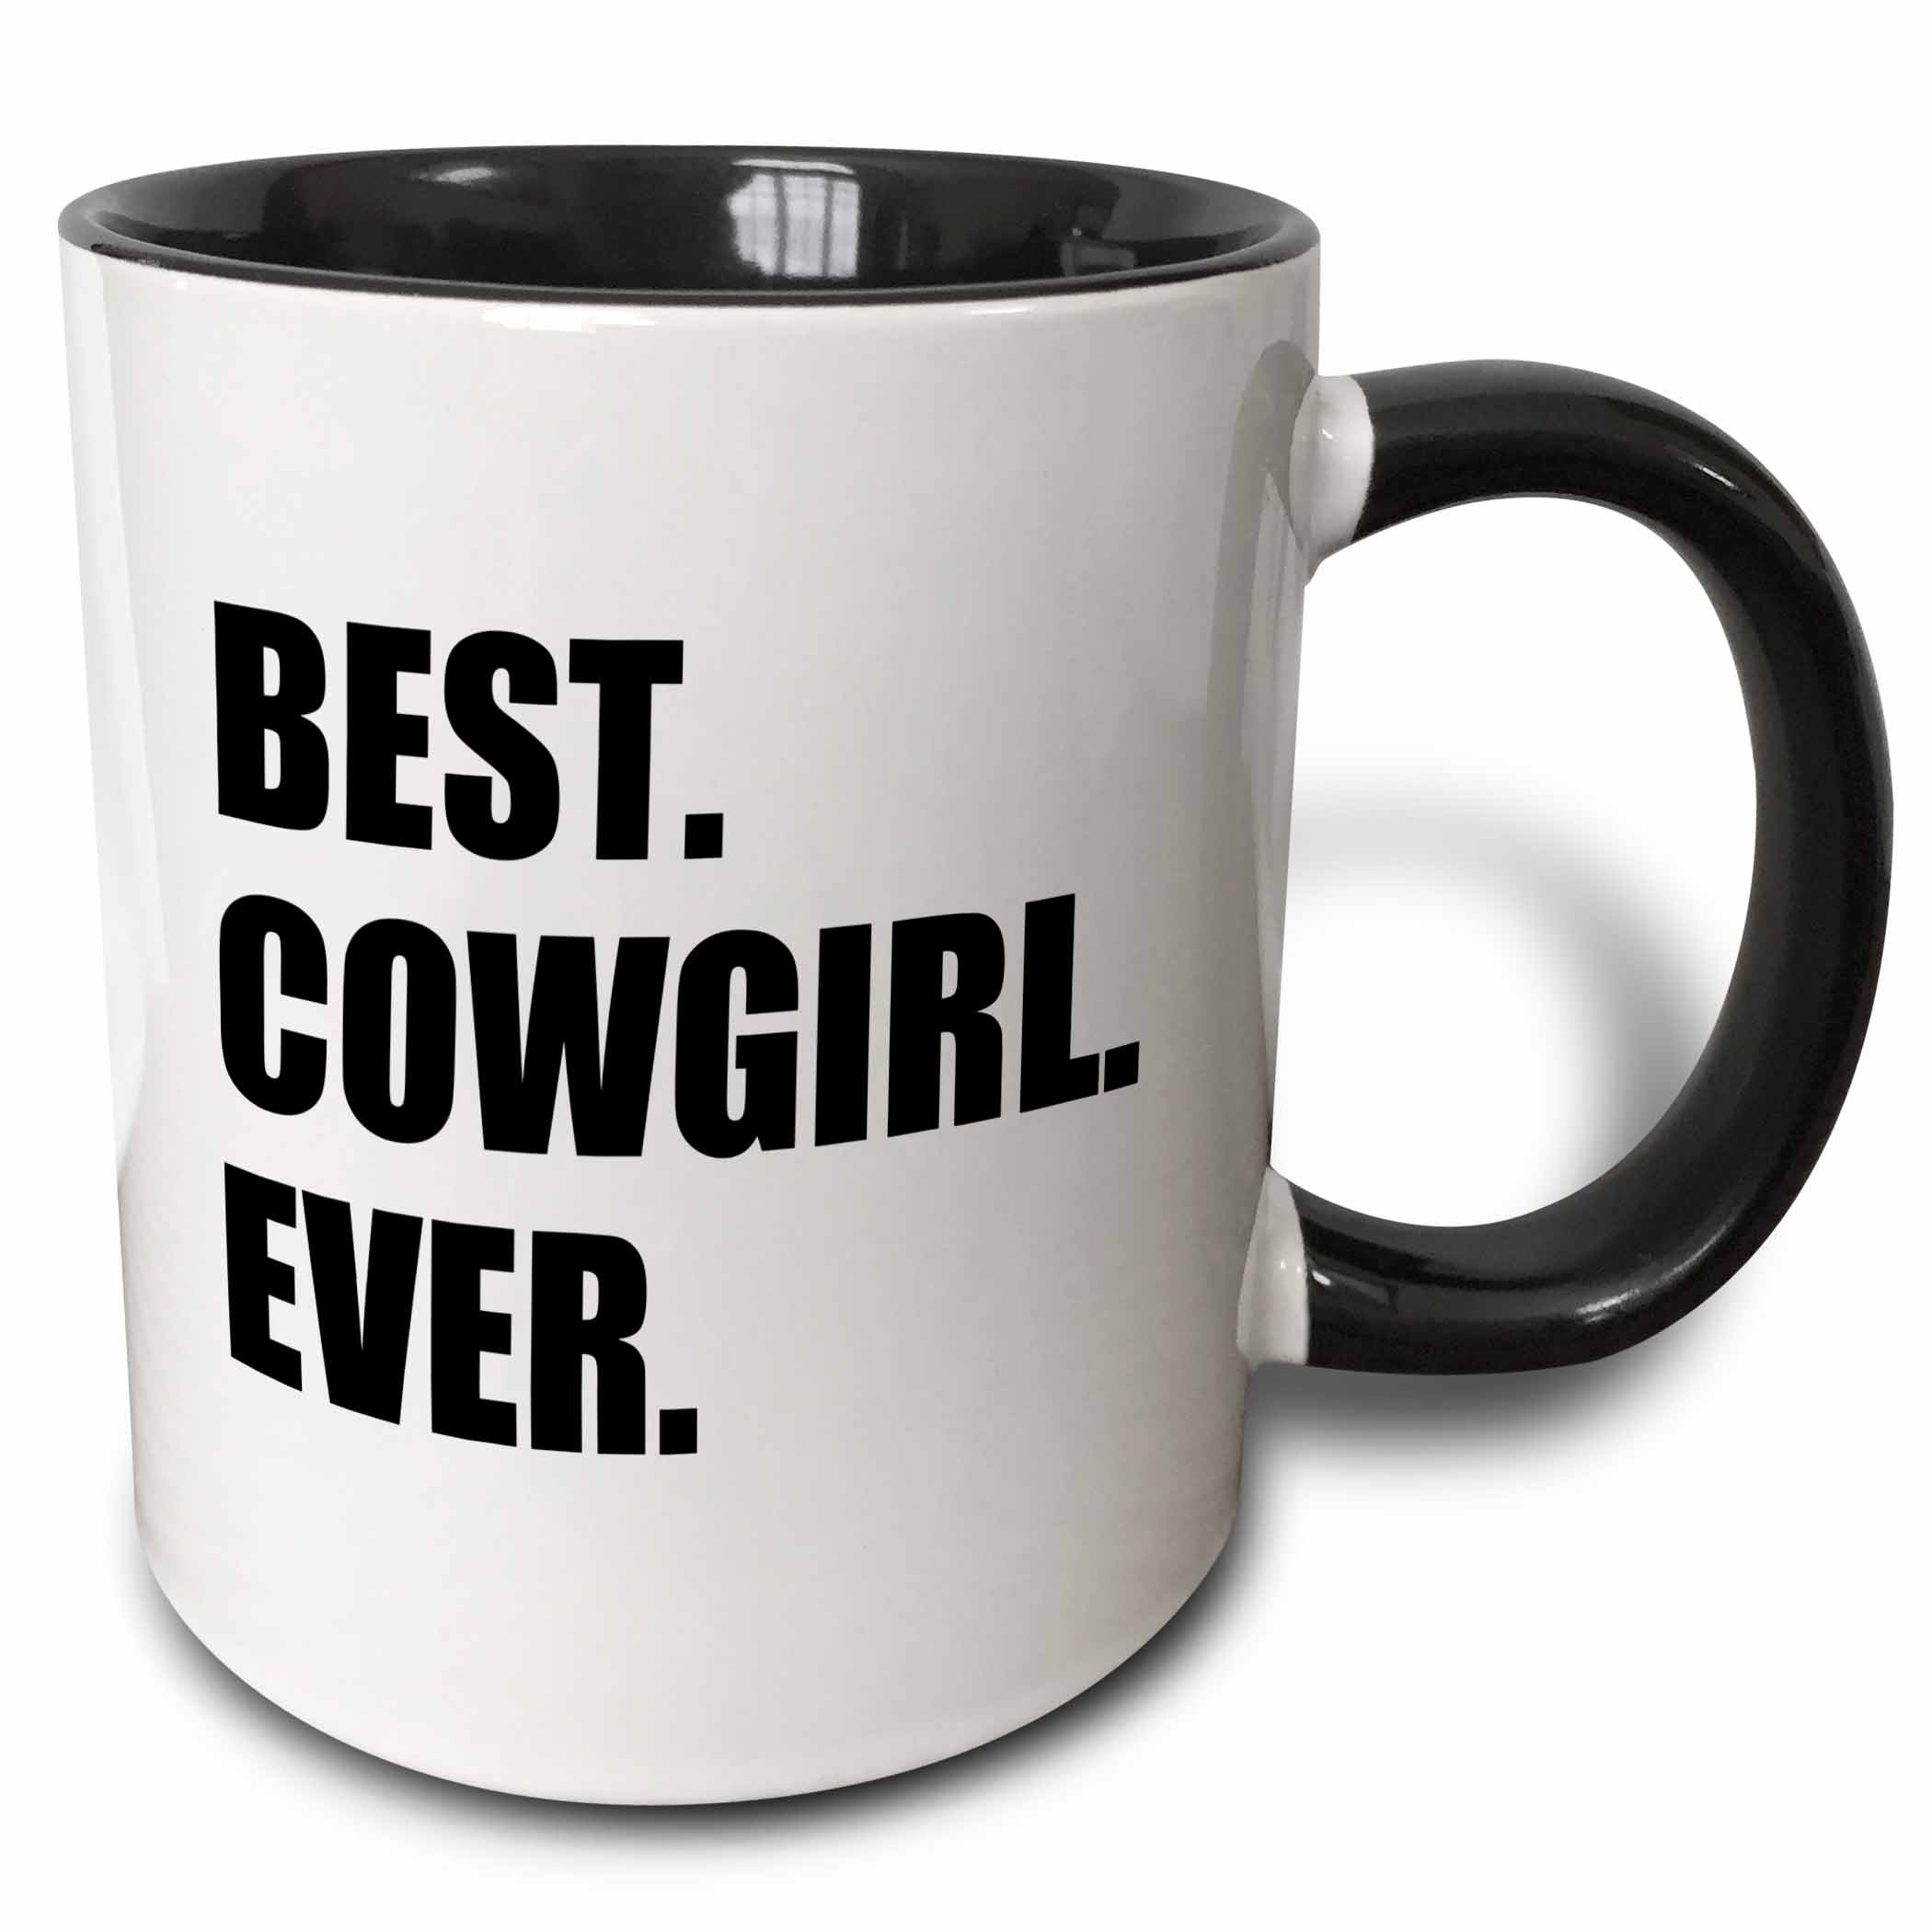 3dRose mug_184991_4 Best Cowgirl Ever - fun country cow girl and Cowboy Gifts - black text - Two Tone Black Mug, 11oz